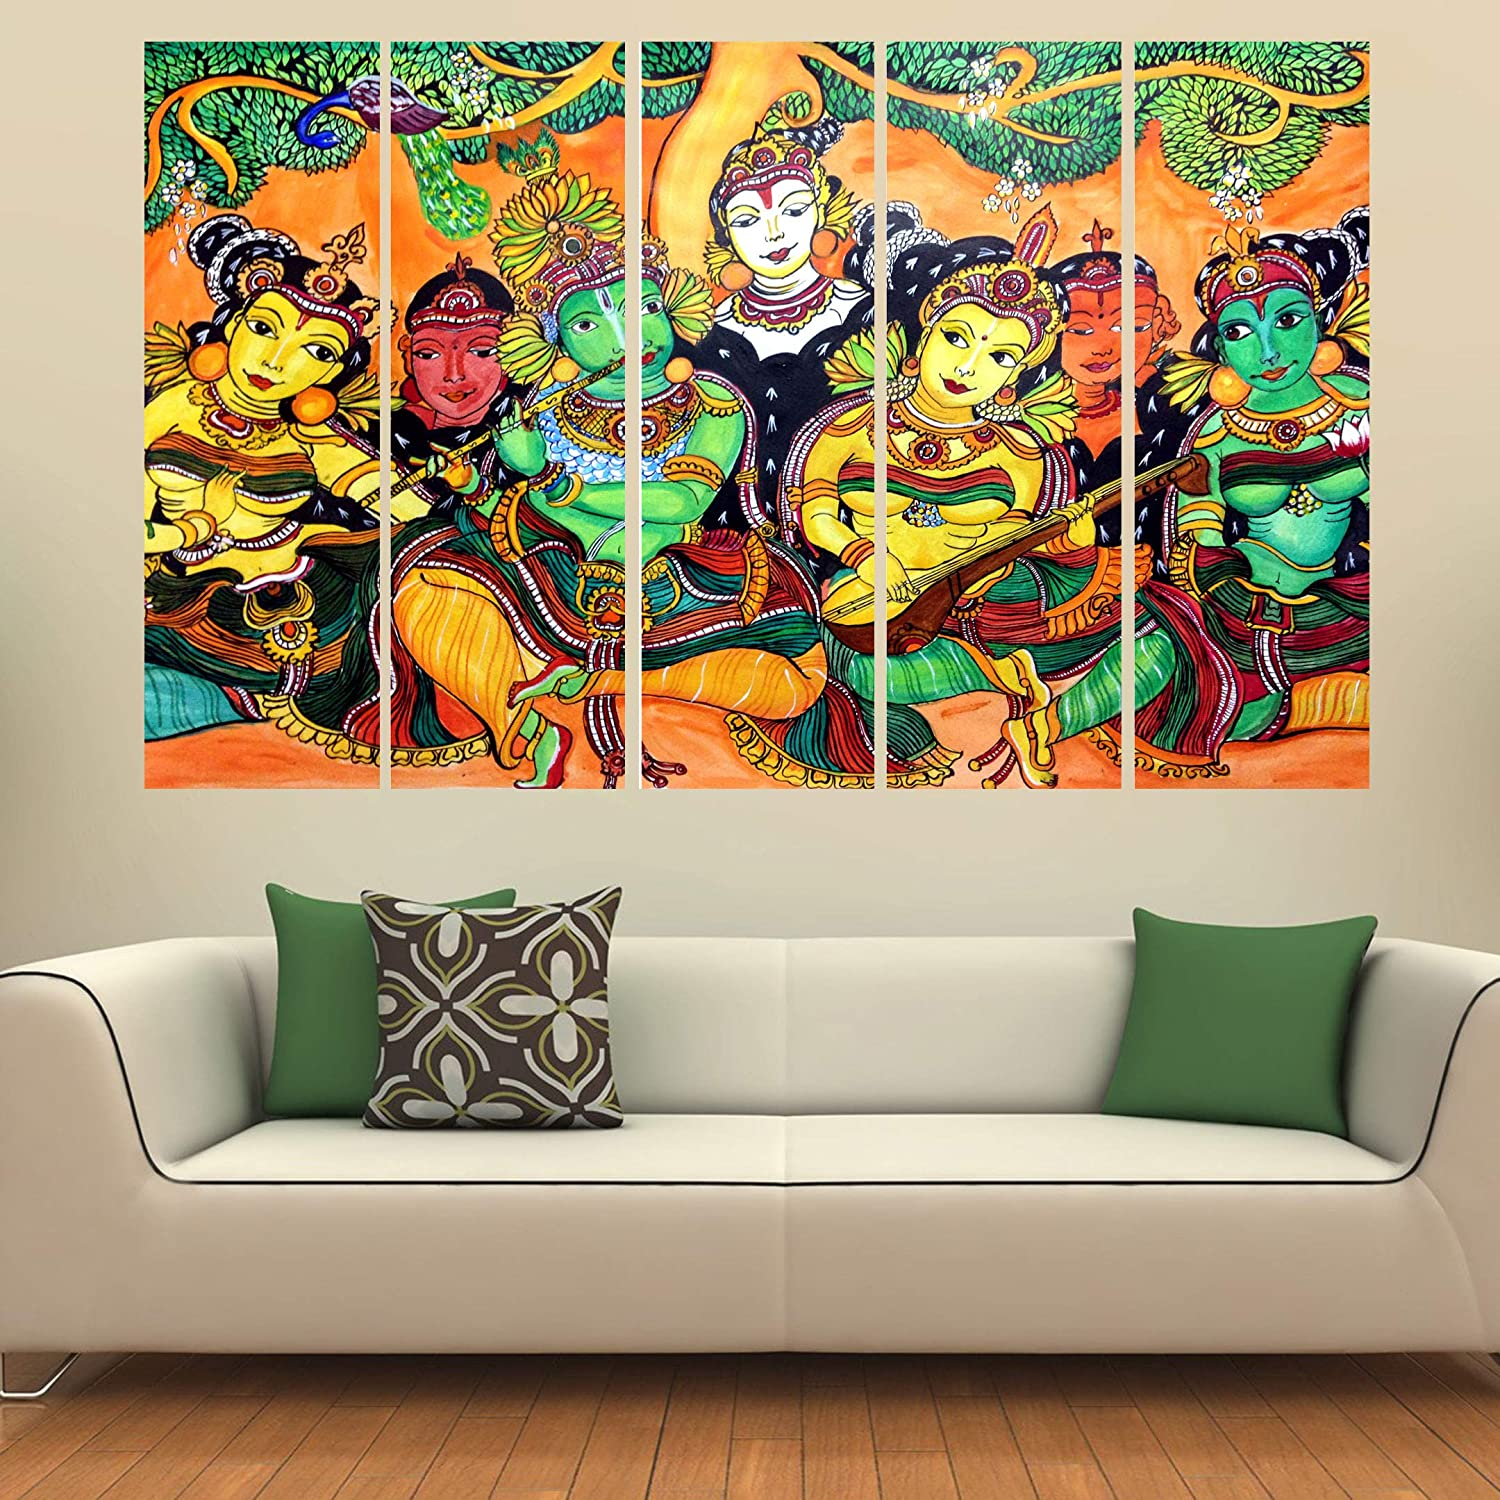 Kyara Arts Multiple Frames Beautiful Kerala Mural Art Painting For Living Room Bedroom Office Hotels Drawing Room Wooden Framed Digital Painting 50inch X 30inch Amazon In Home Kitchen